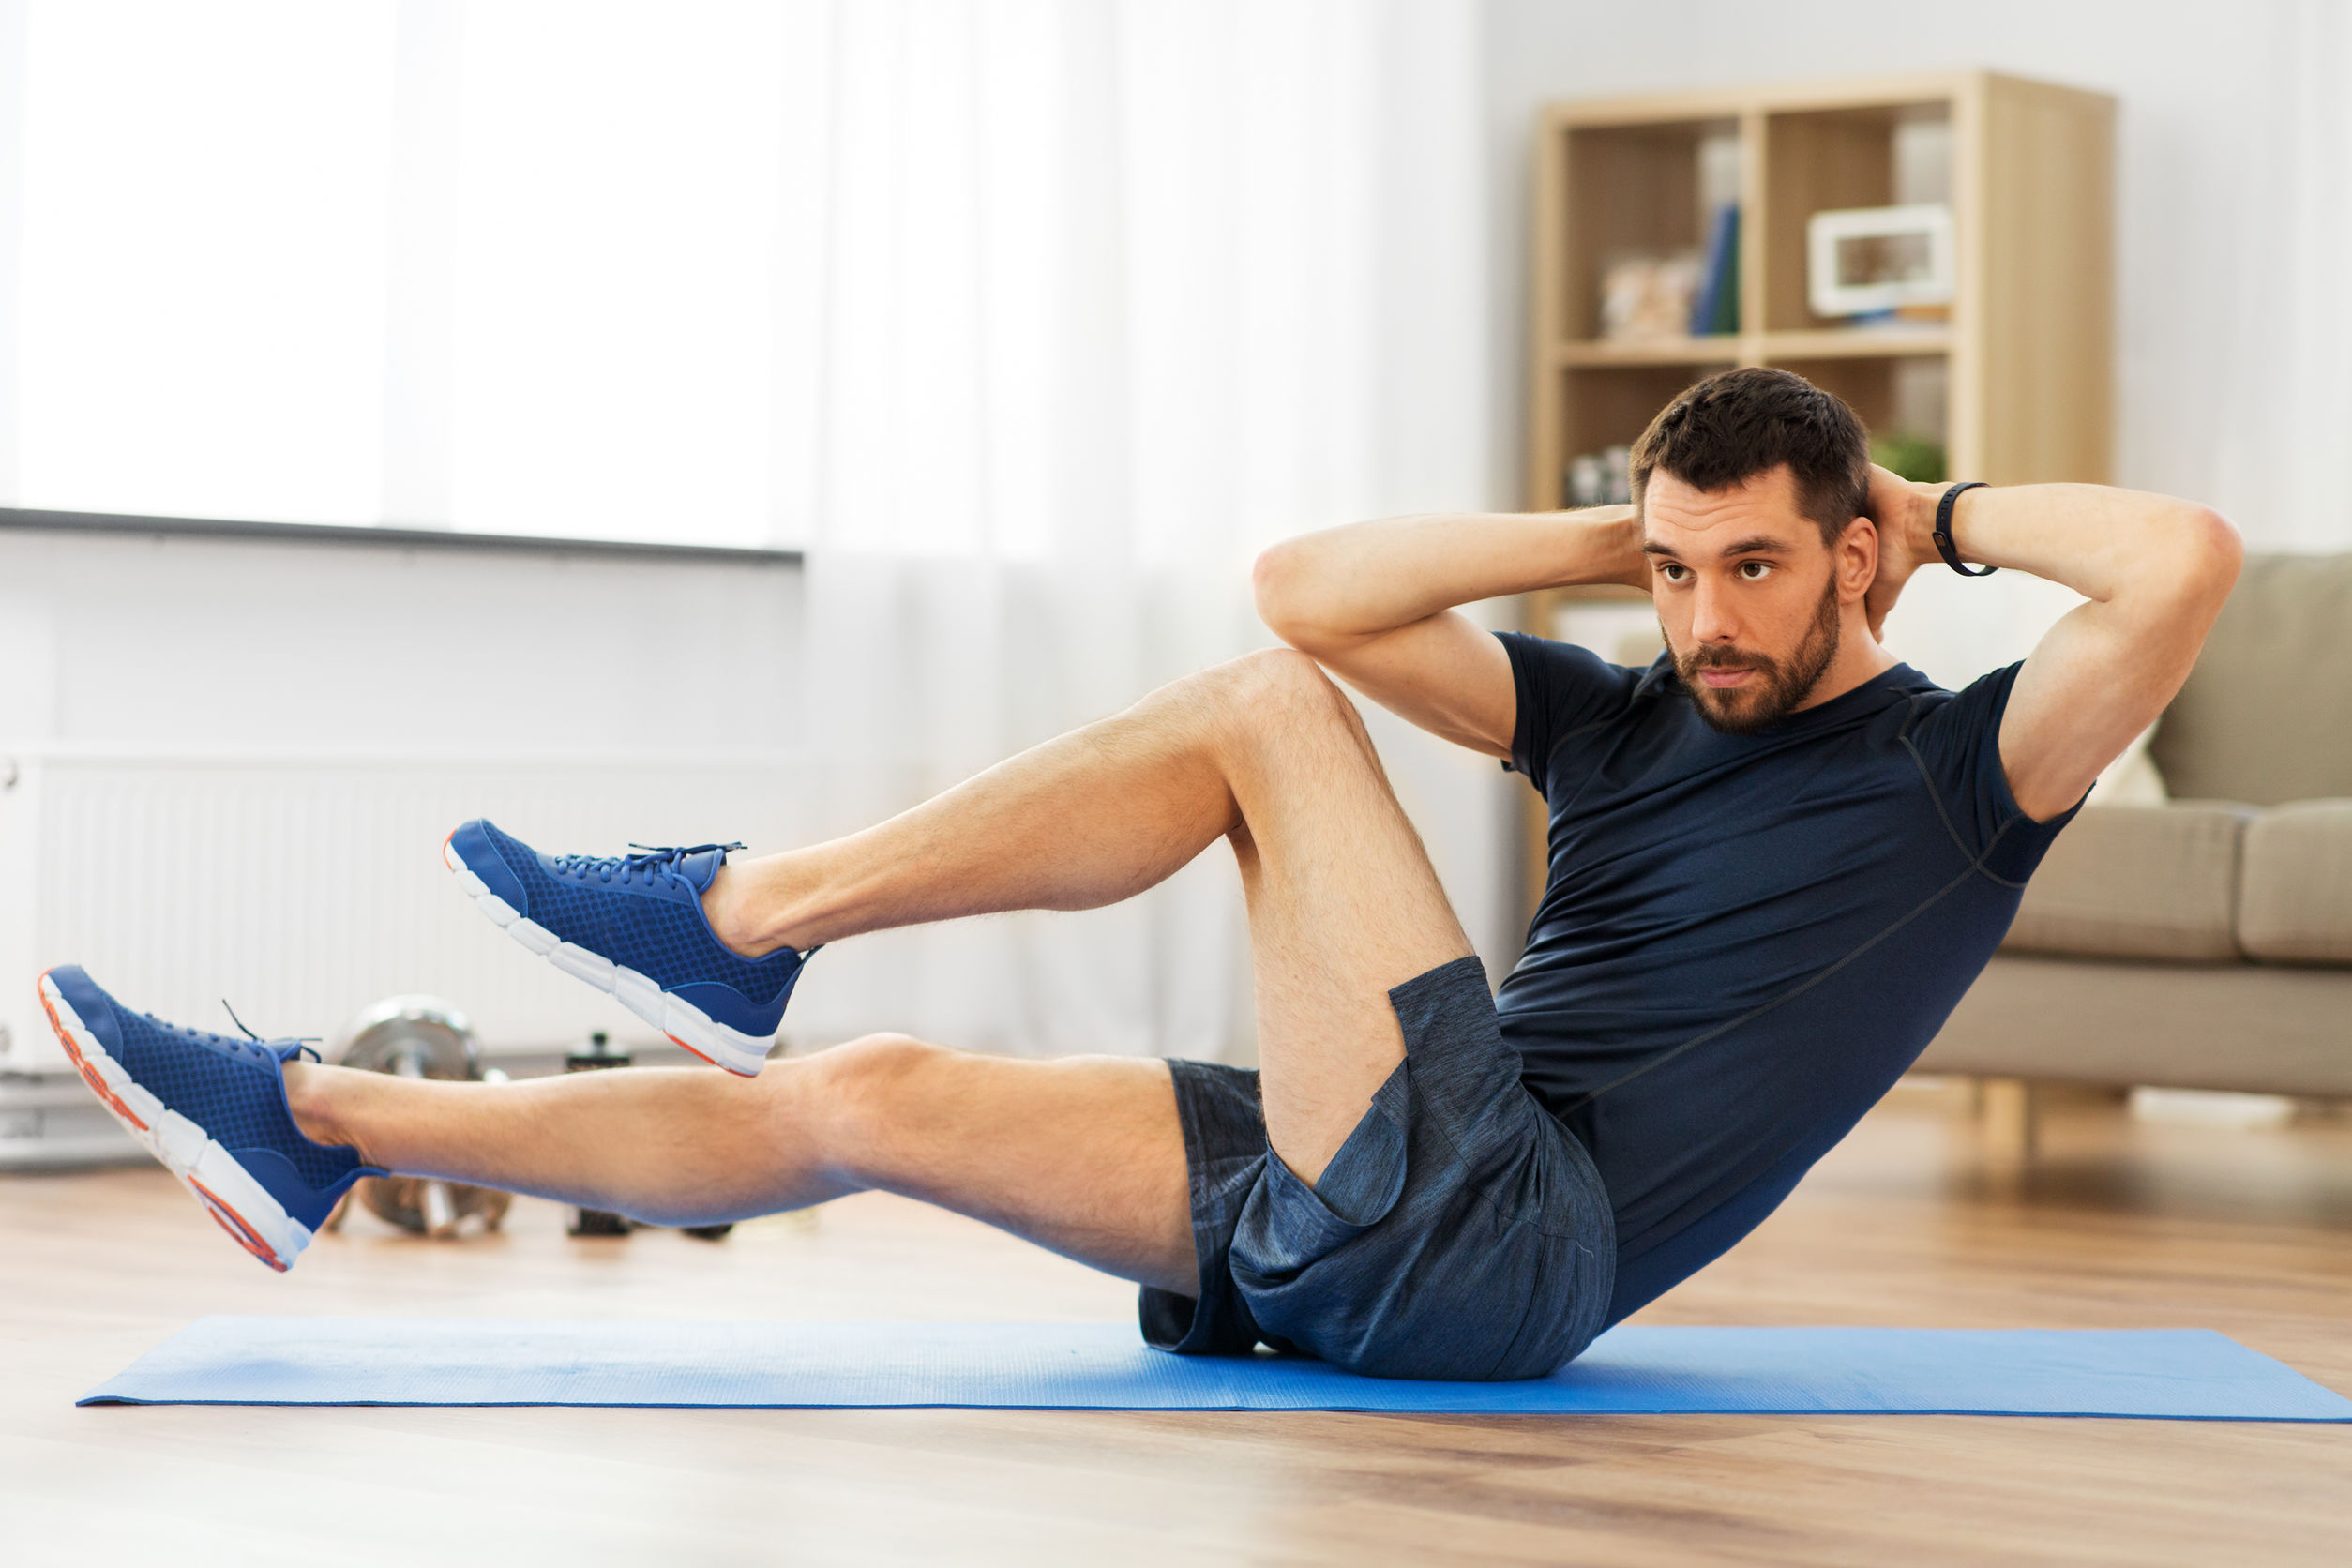 Man doing exercise to release stress